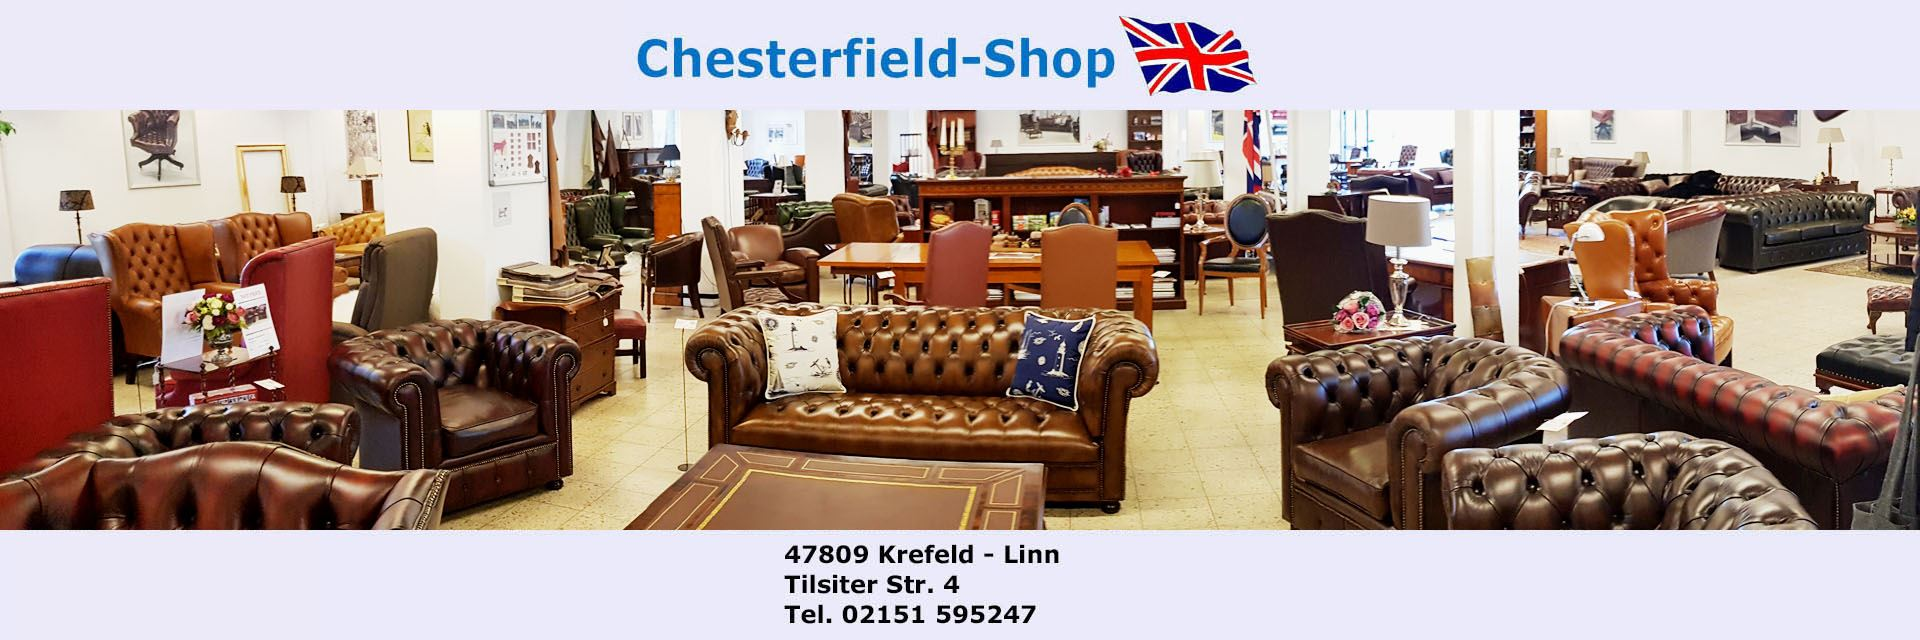 Englischer Sessel Gebraucht Chesterfield Shop De Chesterfield Sofas Sessel Made In England